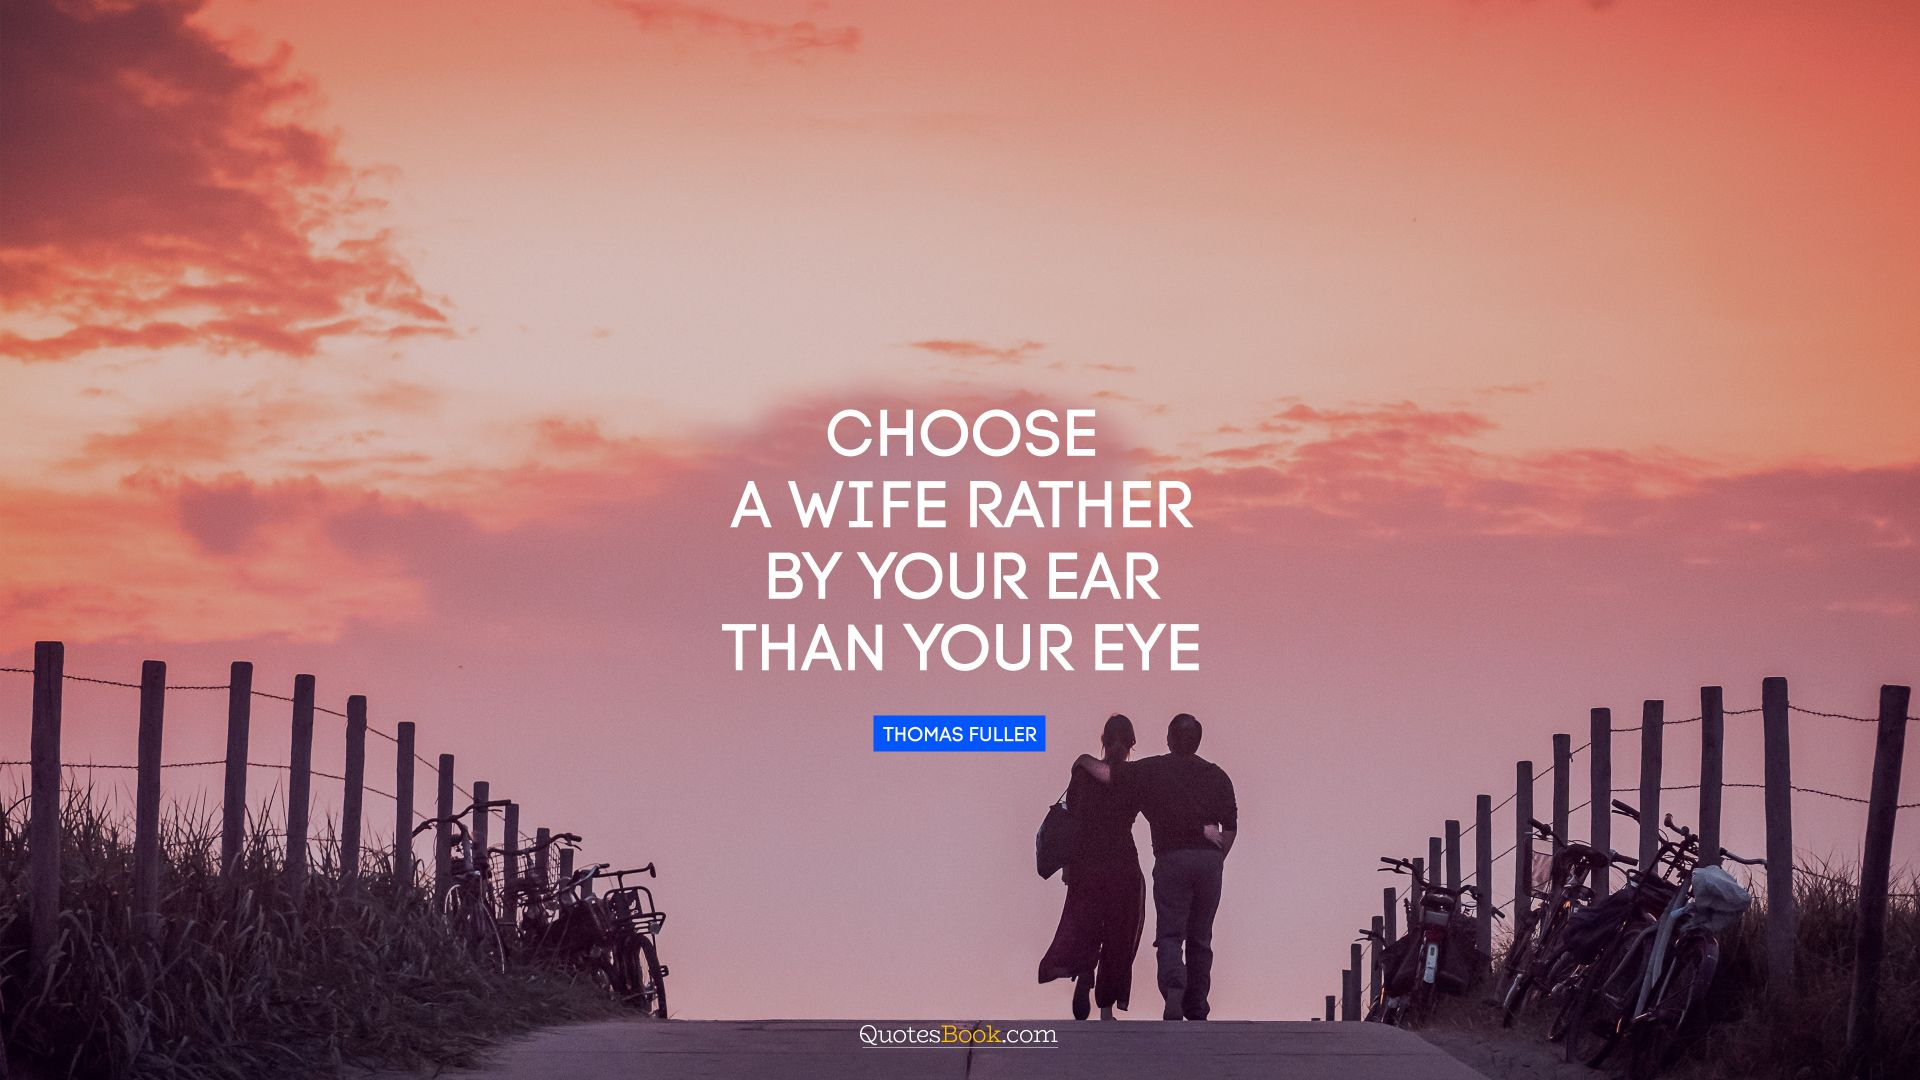 Choose a wife rather by your ear than your eye. - Quote by Thomas Fuller